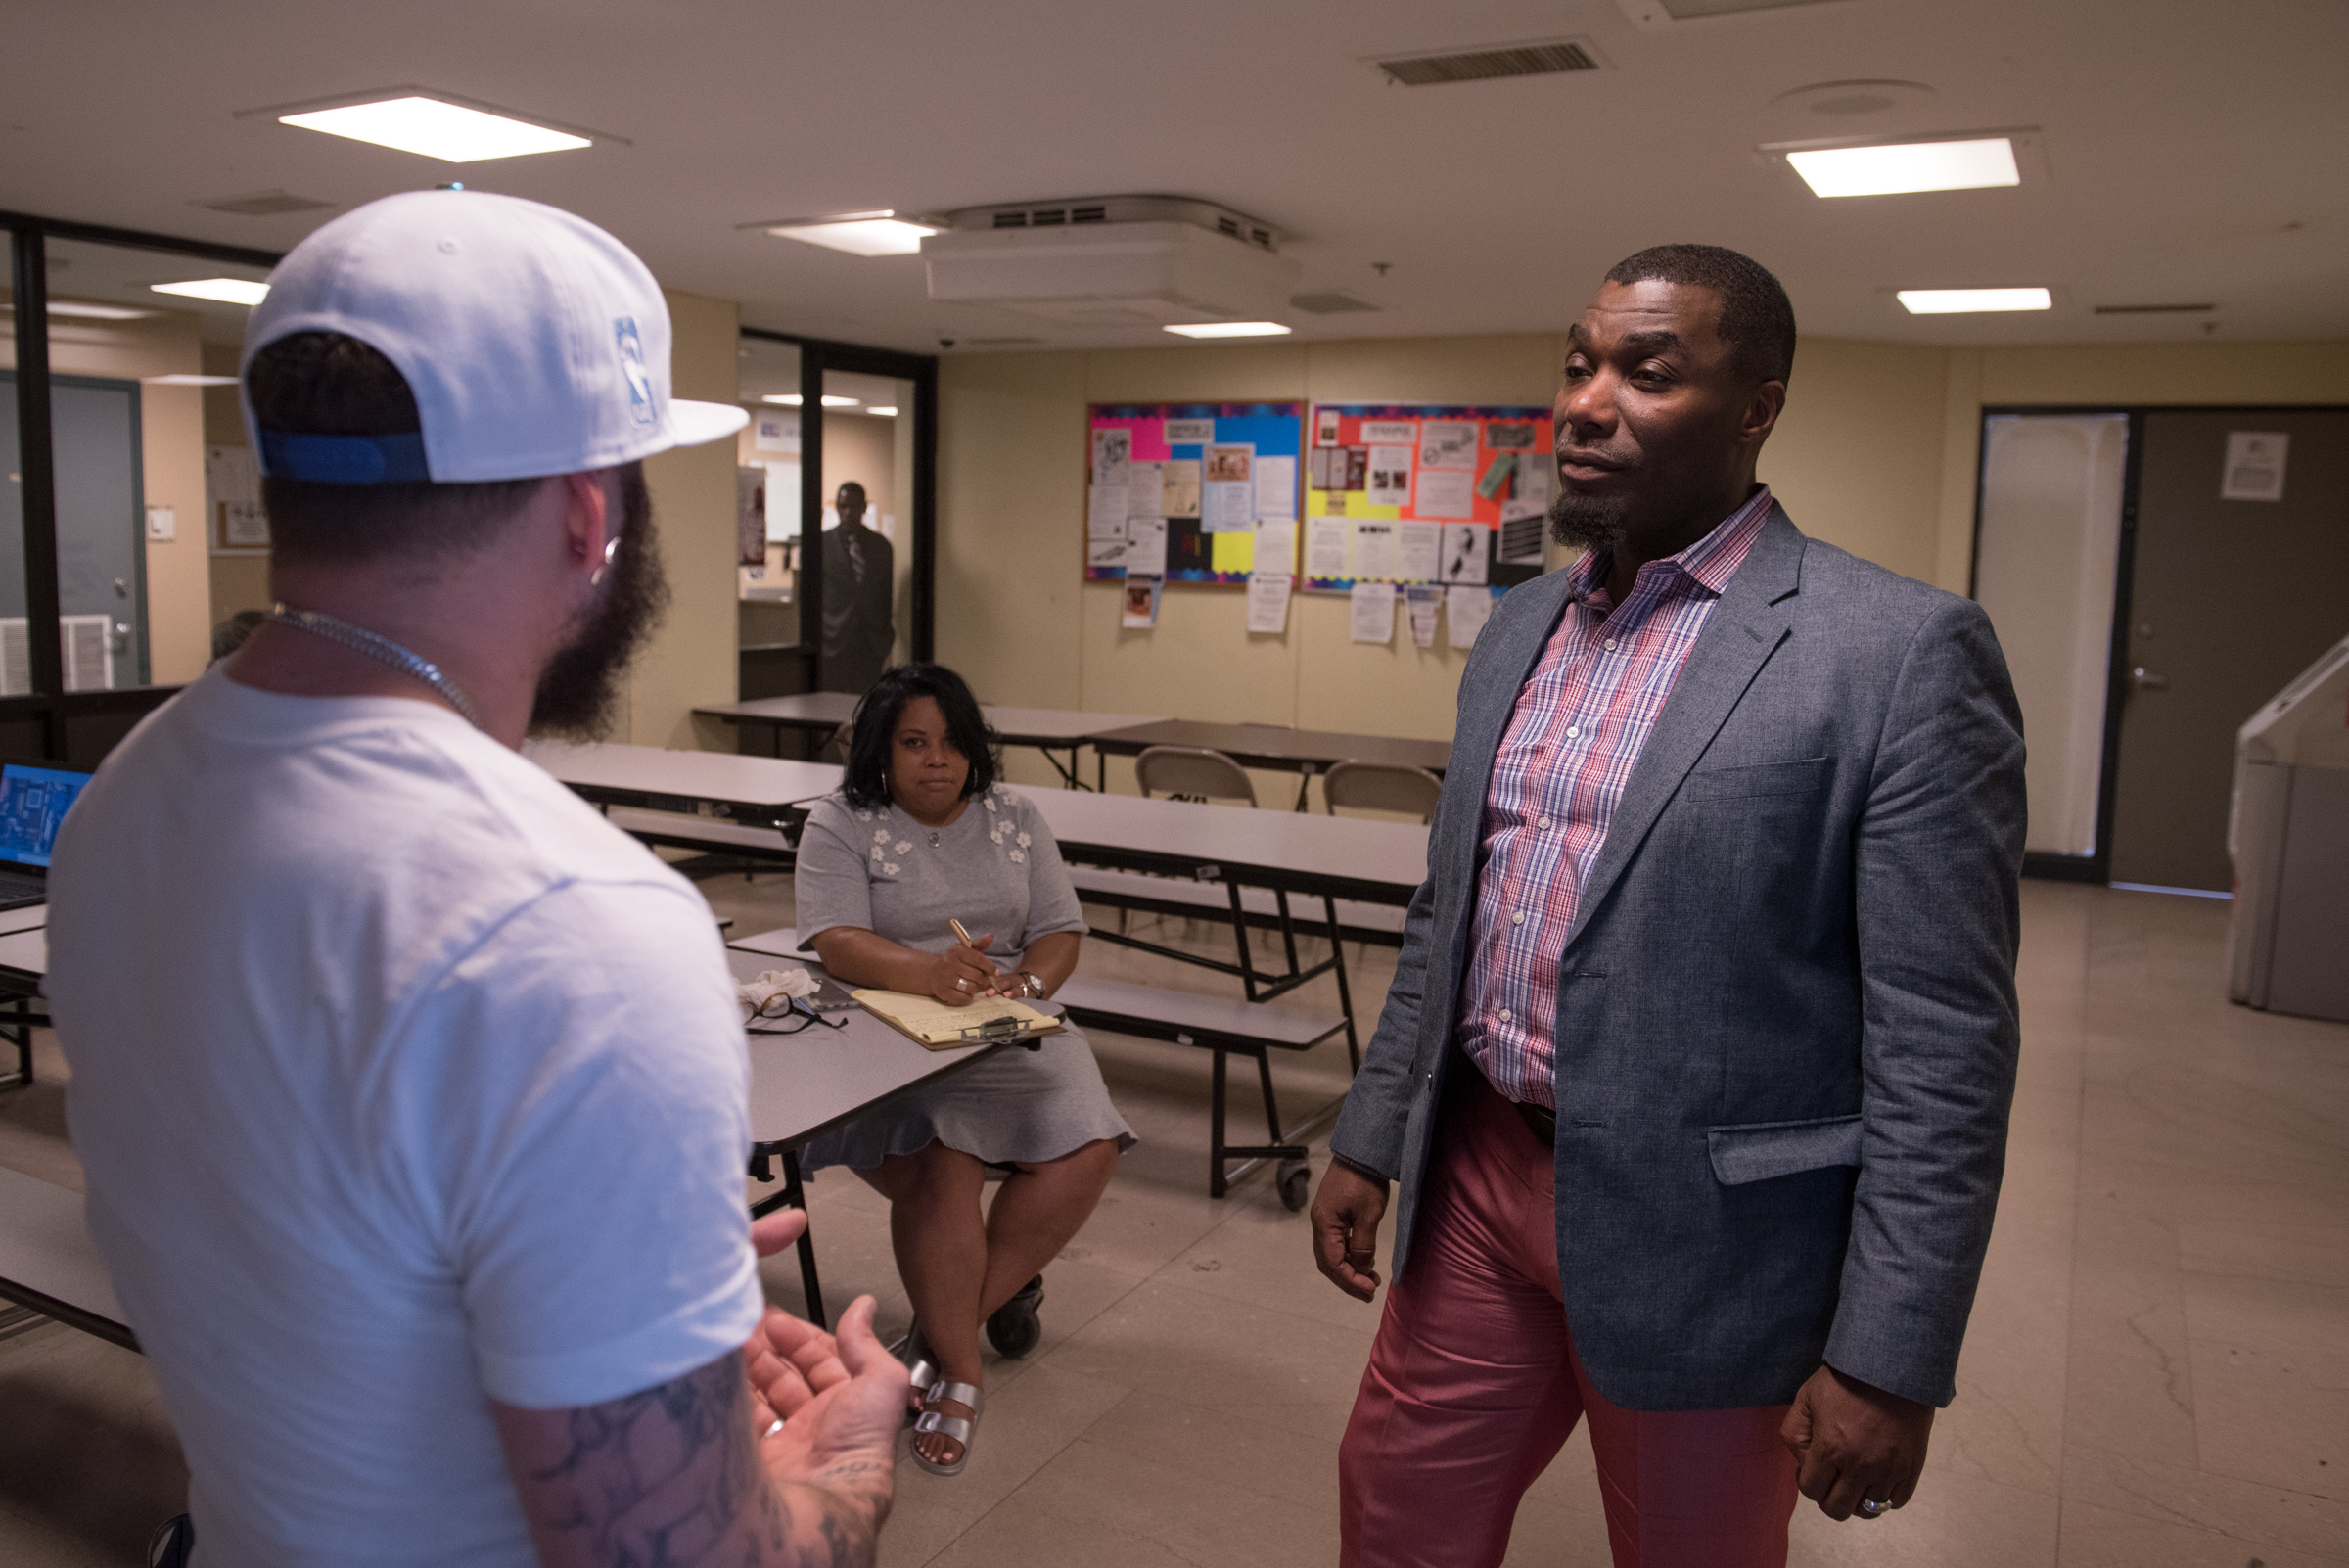 Michael Hinson, President and COO of SELF, Inc., speaks with Ruben Montijo at Station House , a shelter in North Philadelphia. After boumcing from halfway house to halfway house, Montijo stayed at the shelter for three years, until he got his own apartment in May.